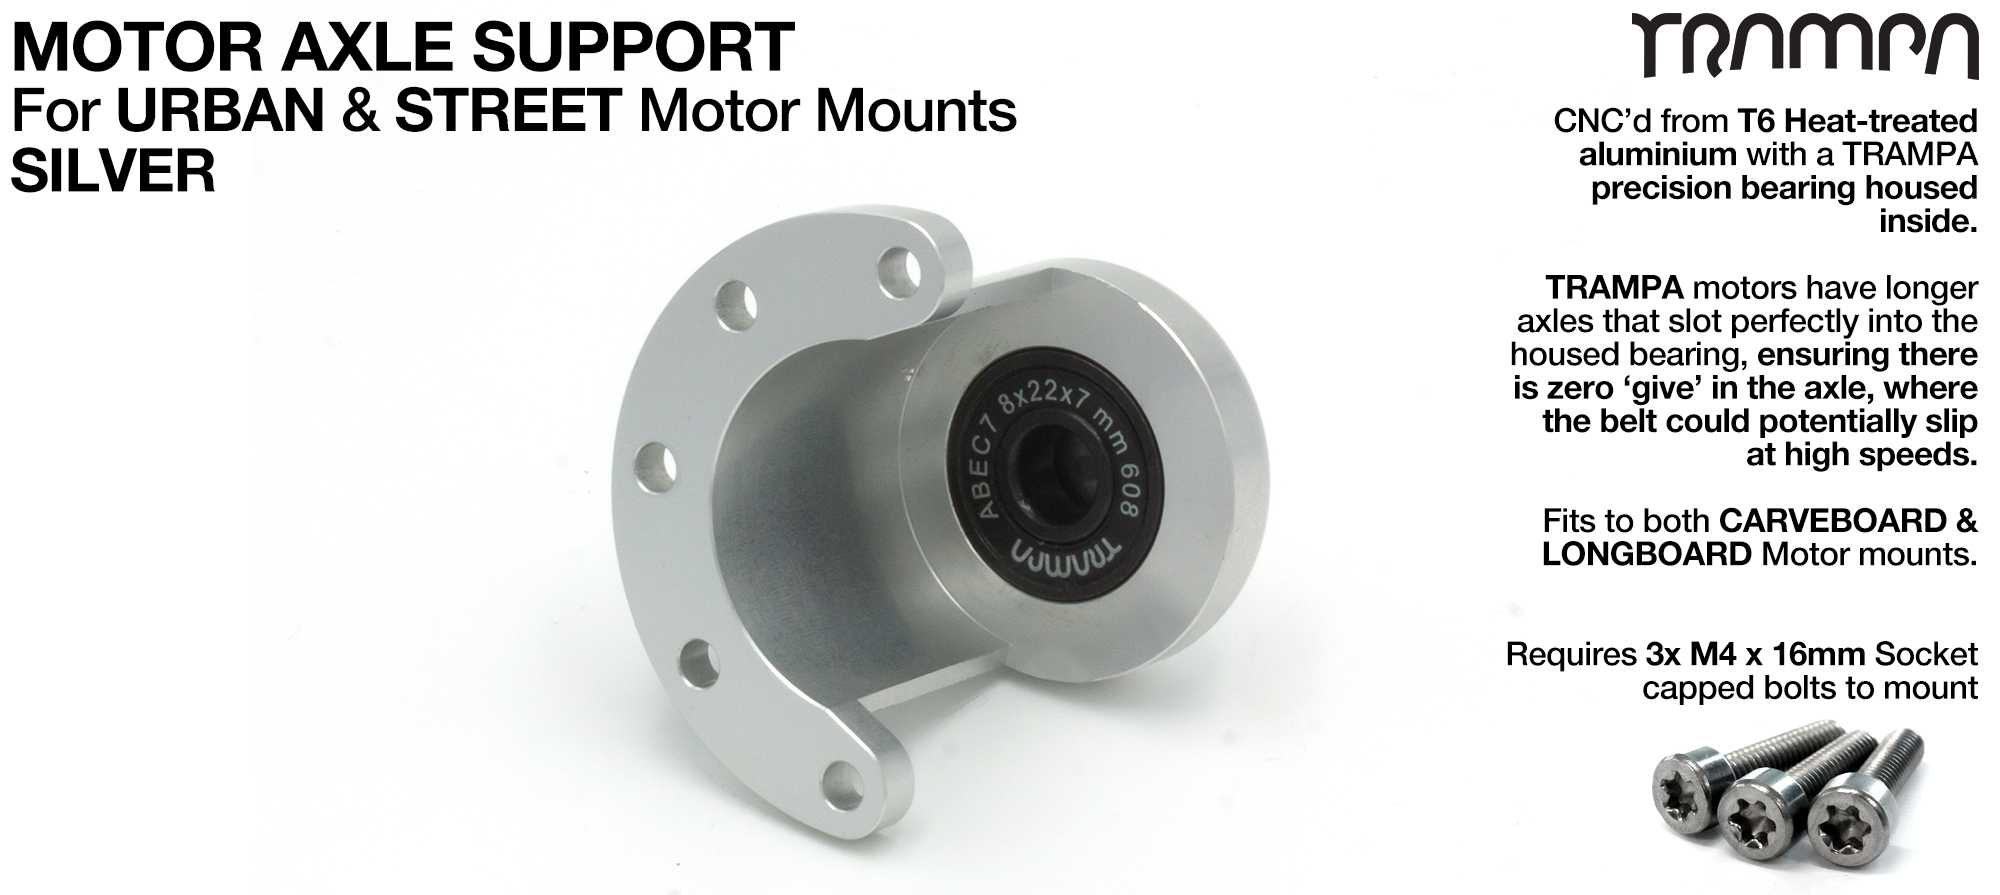 Motor Axle Support Housing with TRAMPA R608 8x22x7mm Bearing, C-Clip & Stainless Steel fixing Bolts for Mini Spring Truck MKII CARVE Motor Mounts UNIVERSAL - SILVER